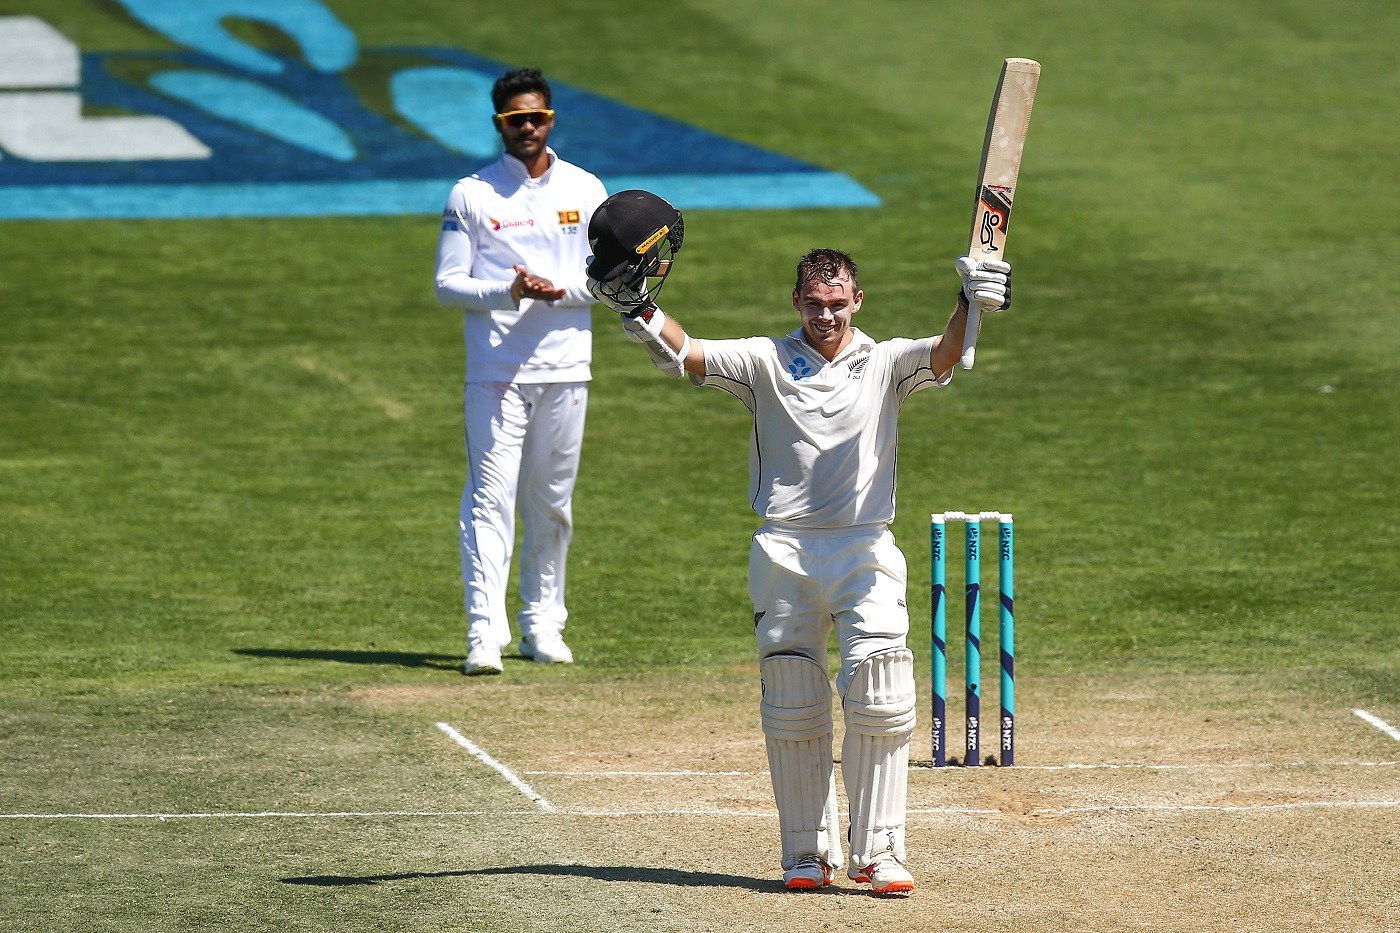 41ec51c4 New Zealand vs Sri Lanka 1st Test Day 3: Sri Lanka stumble after Latham's  career-best 264*